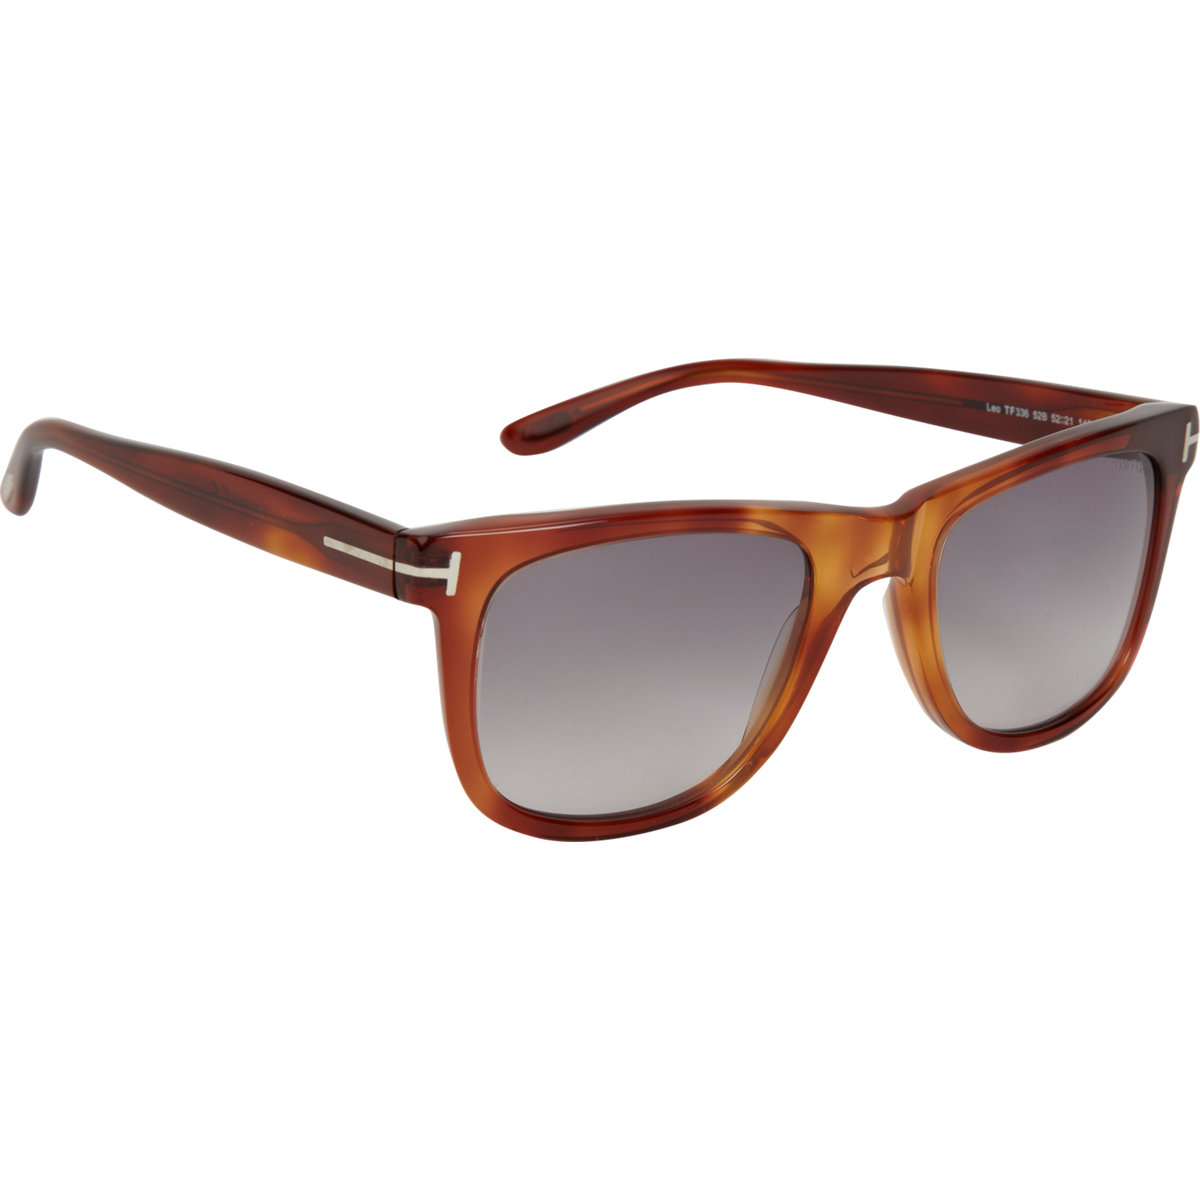 tom ford leo sunglasses in brown for men lyst. Cars Review. Best American Auto & Cars Review